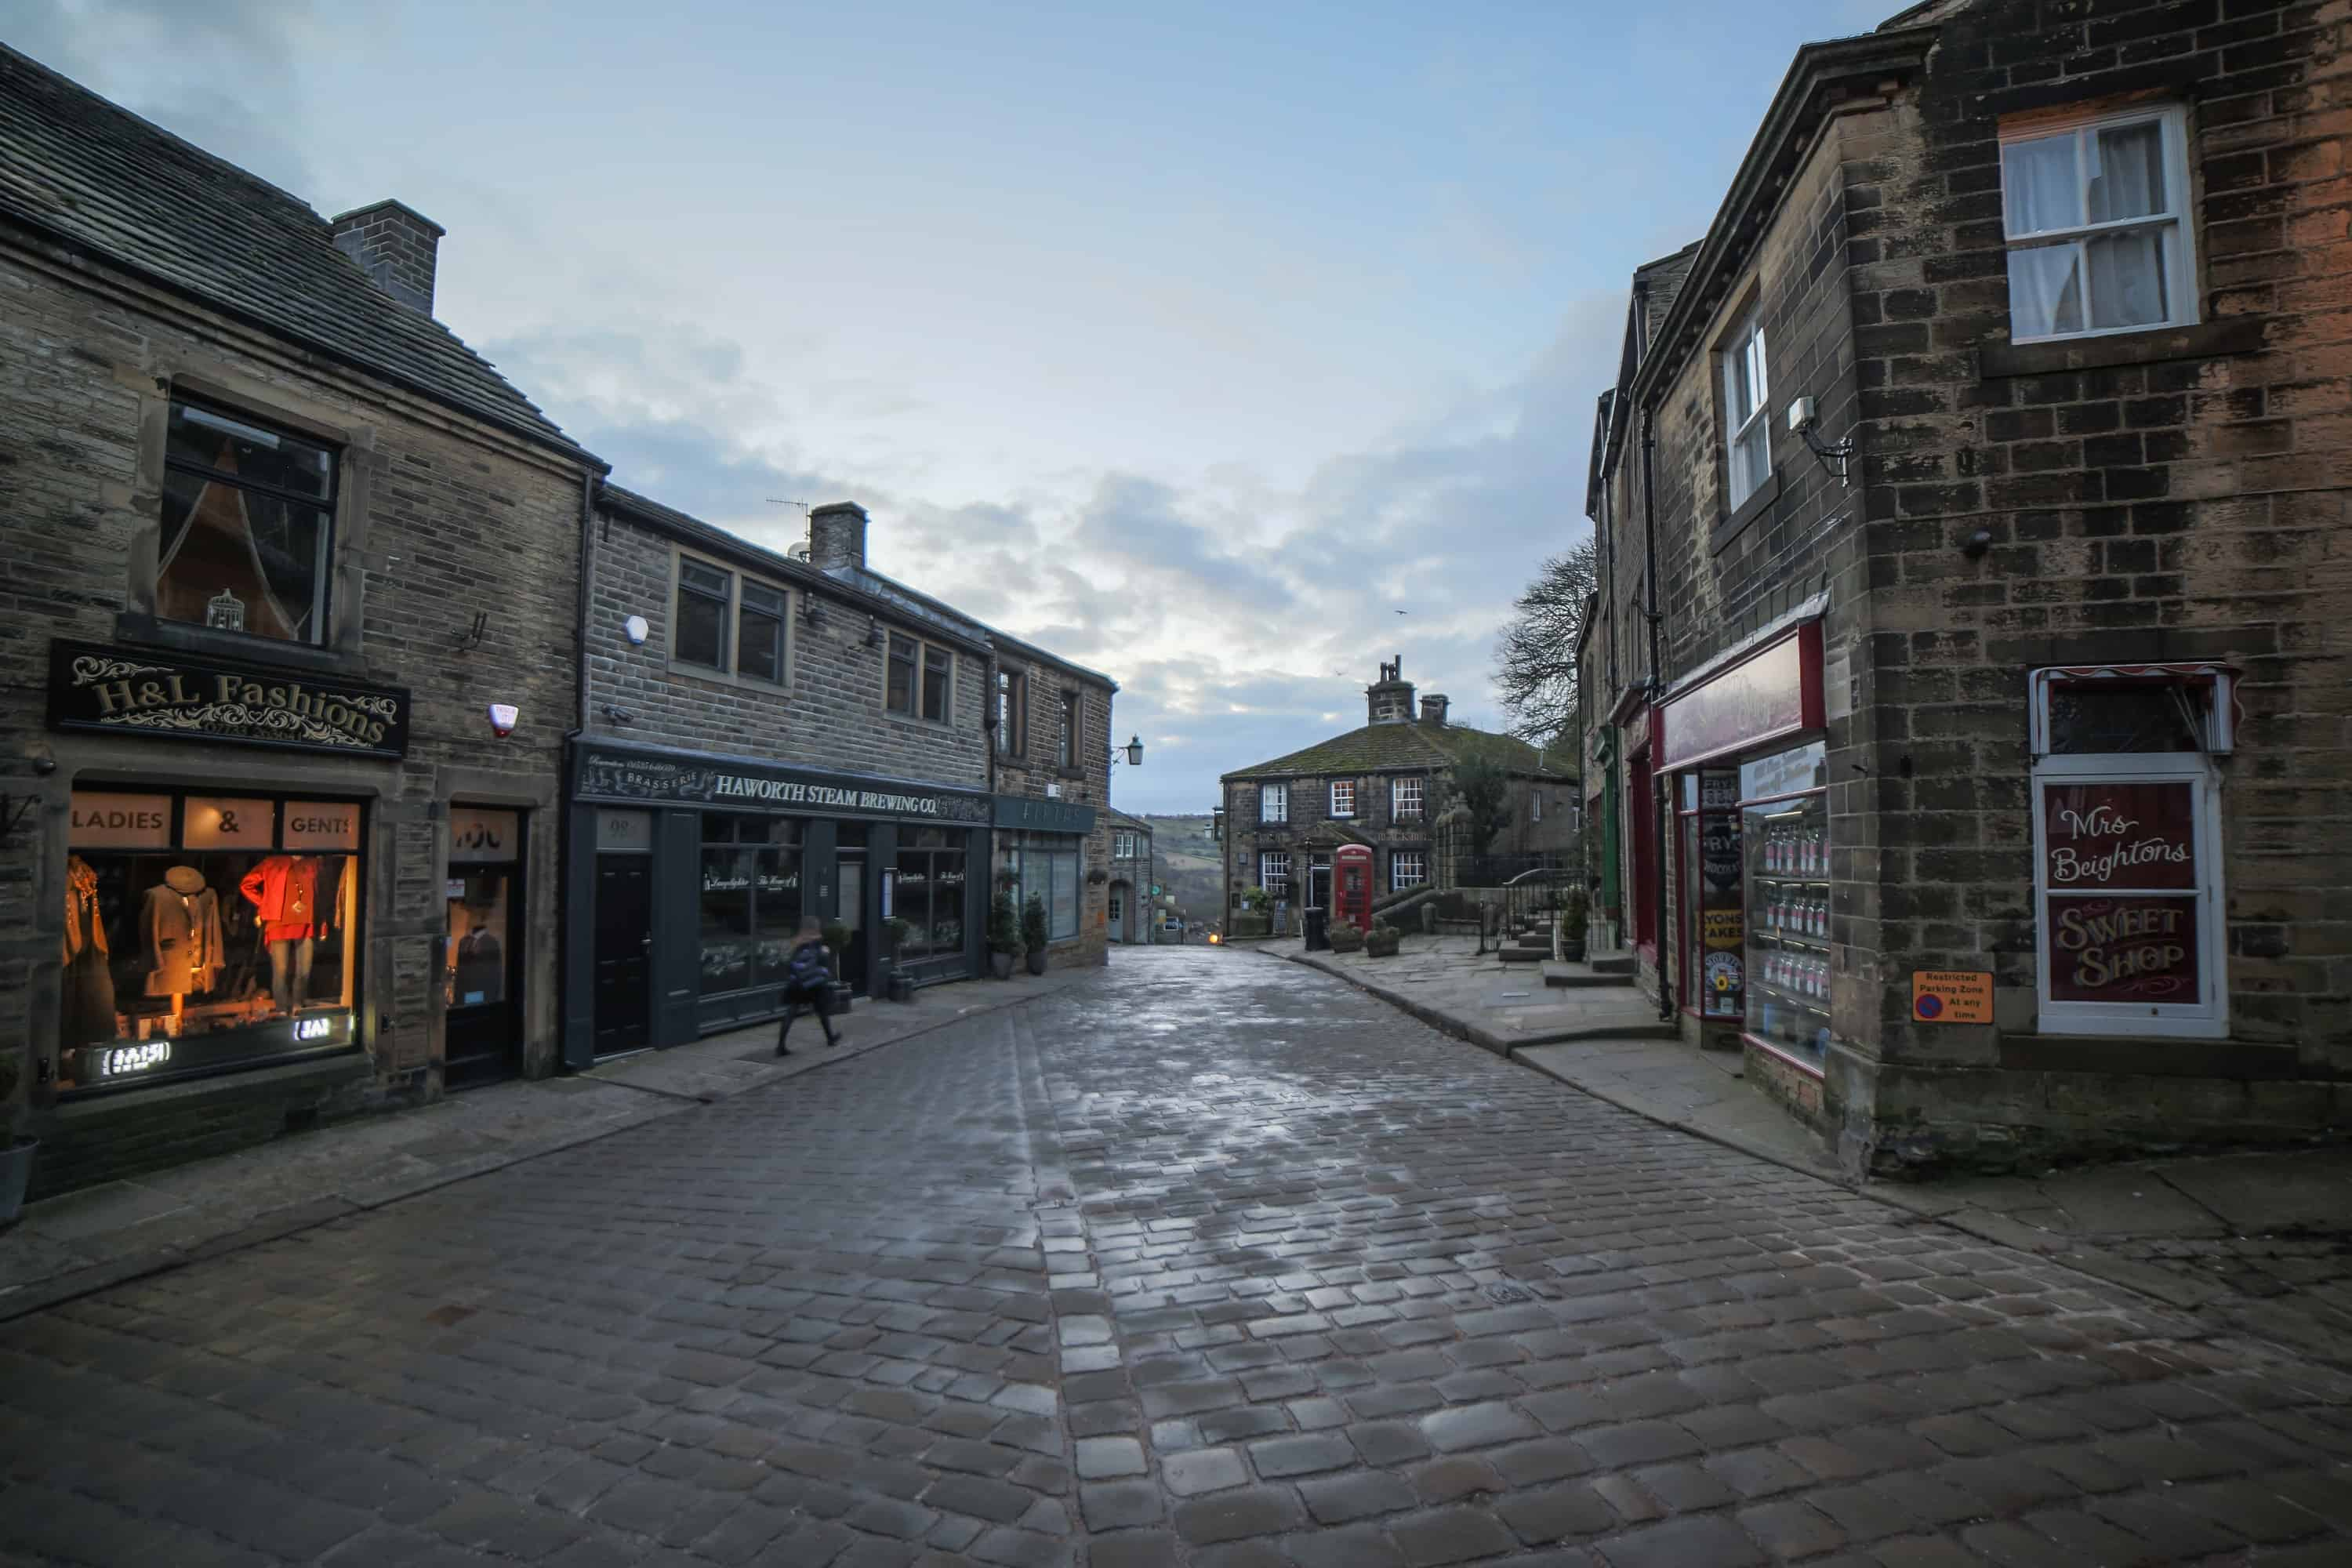 Main Street, Haworth.